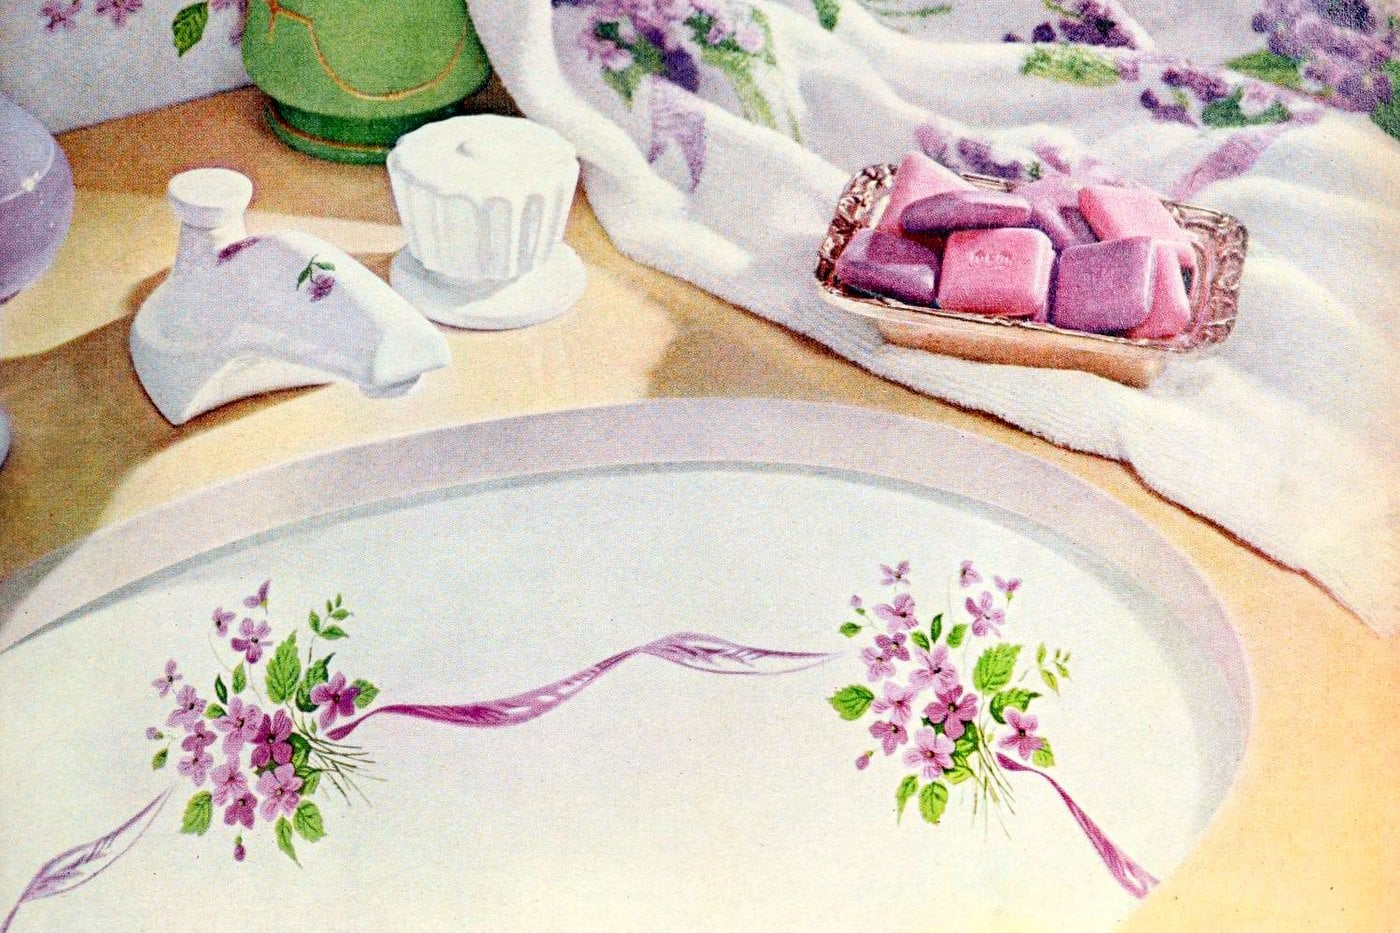 Fancy painted decorated bathroom sinks like these were popular in the 60s